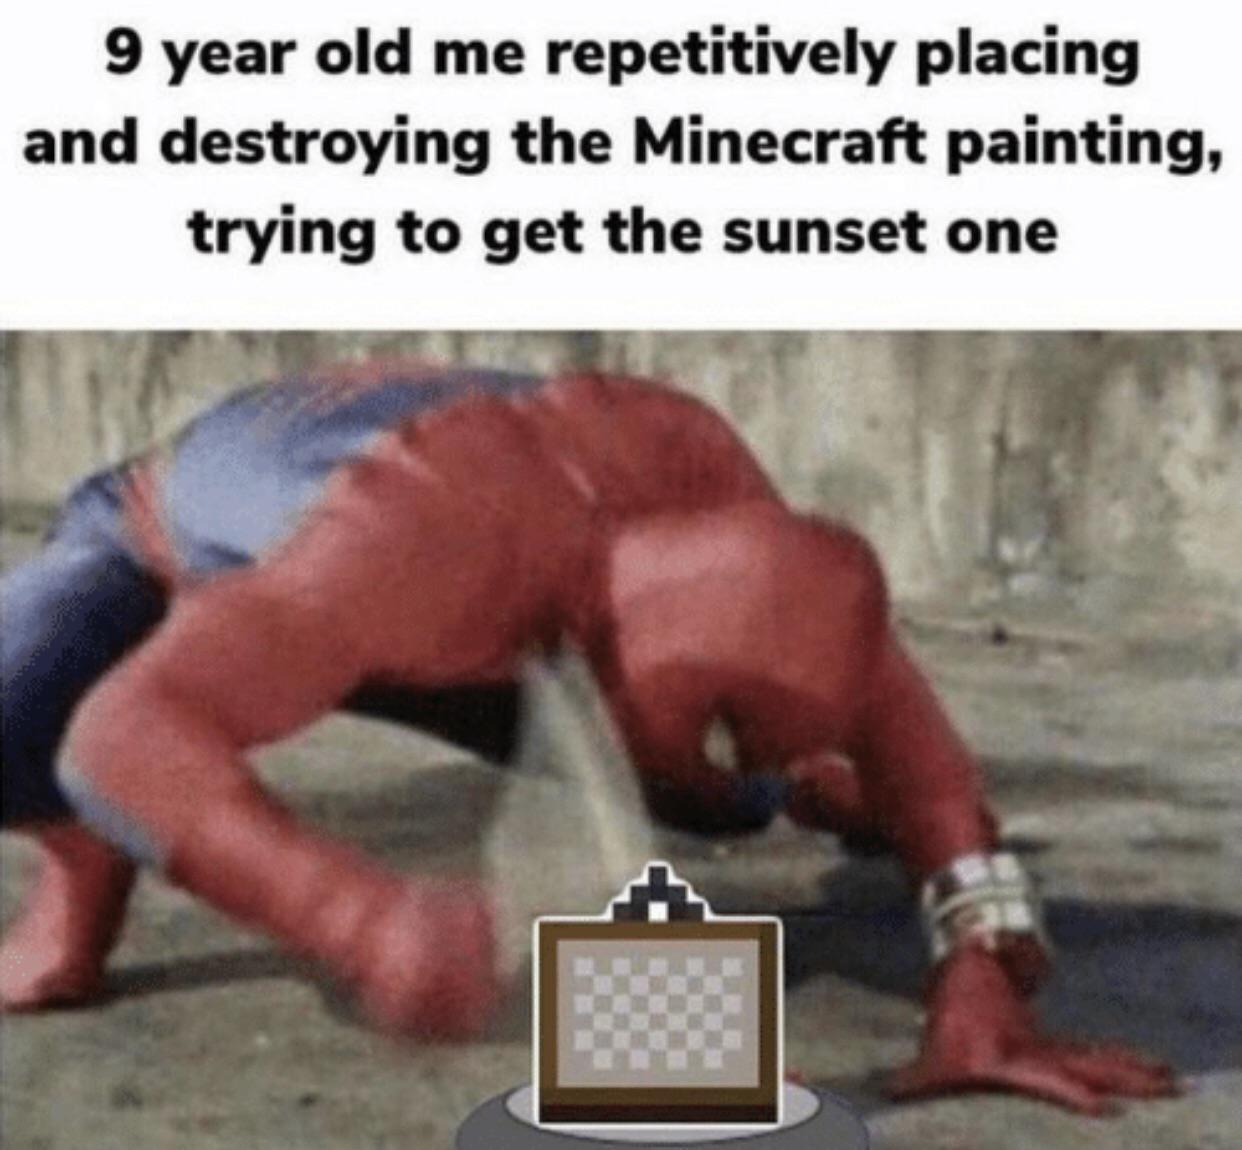 I always wanted the sunset painting or else I wasn't happy with the paintings. - meme